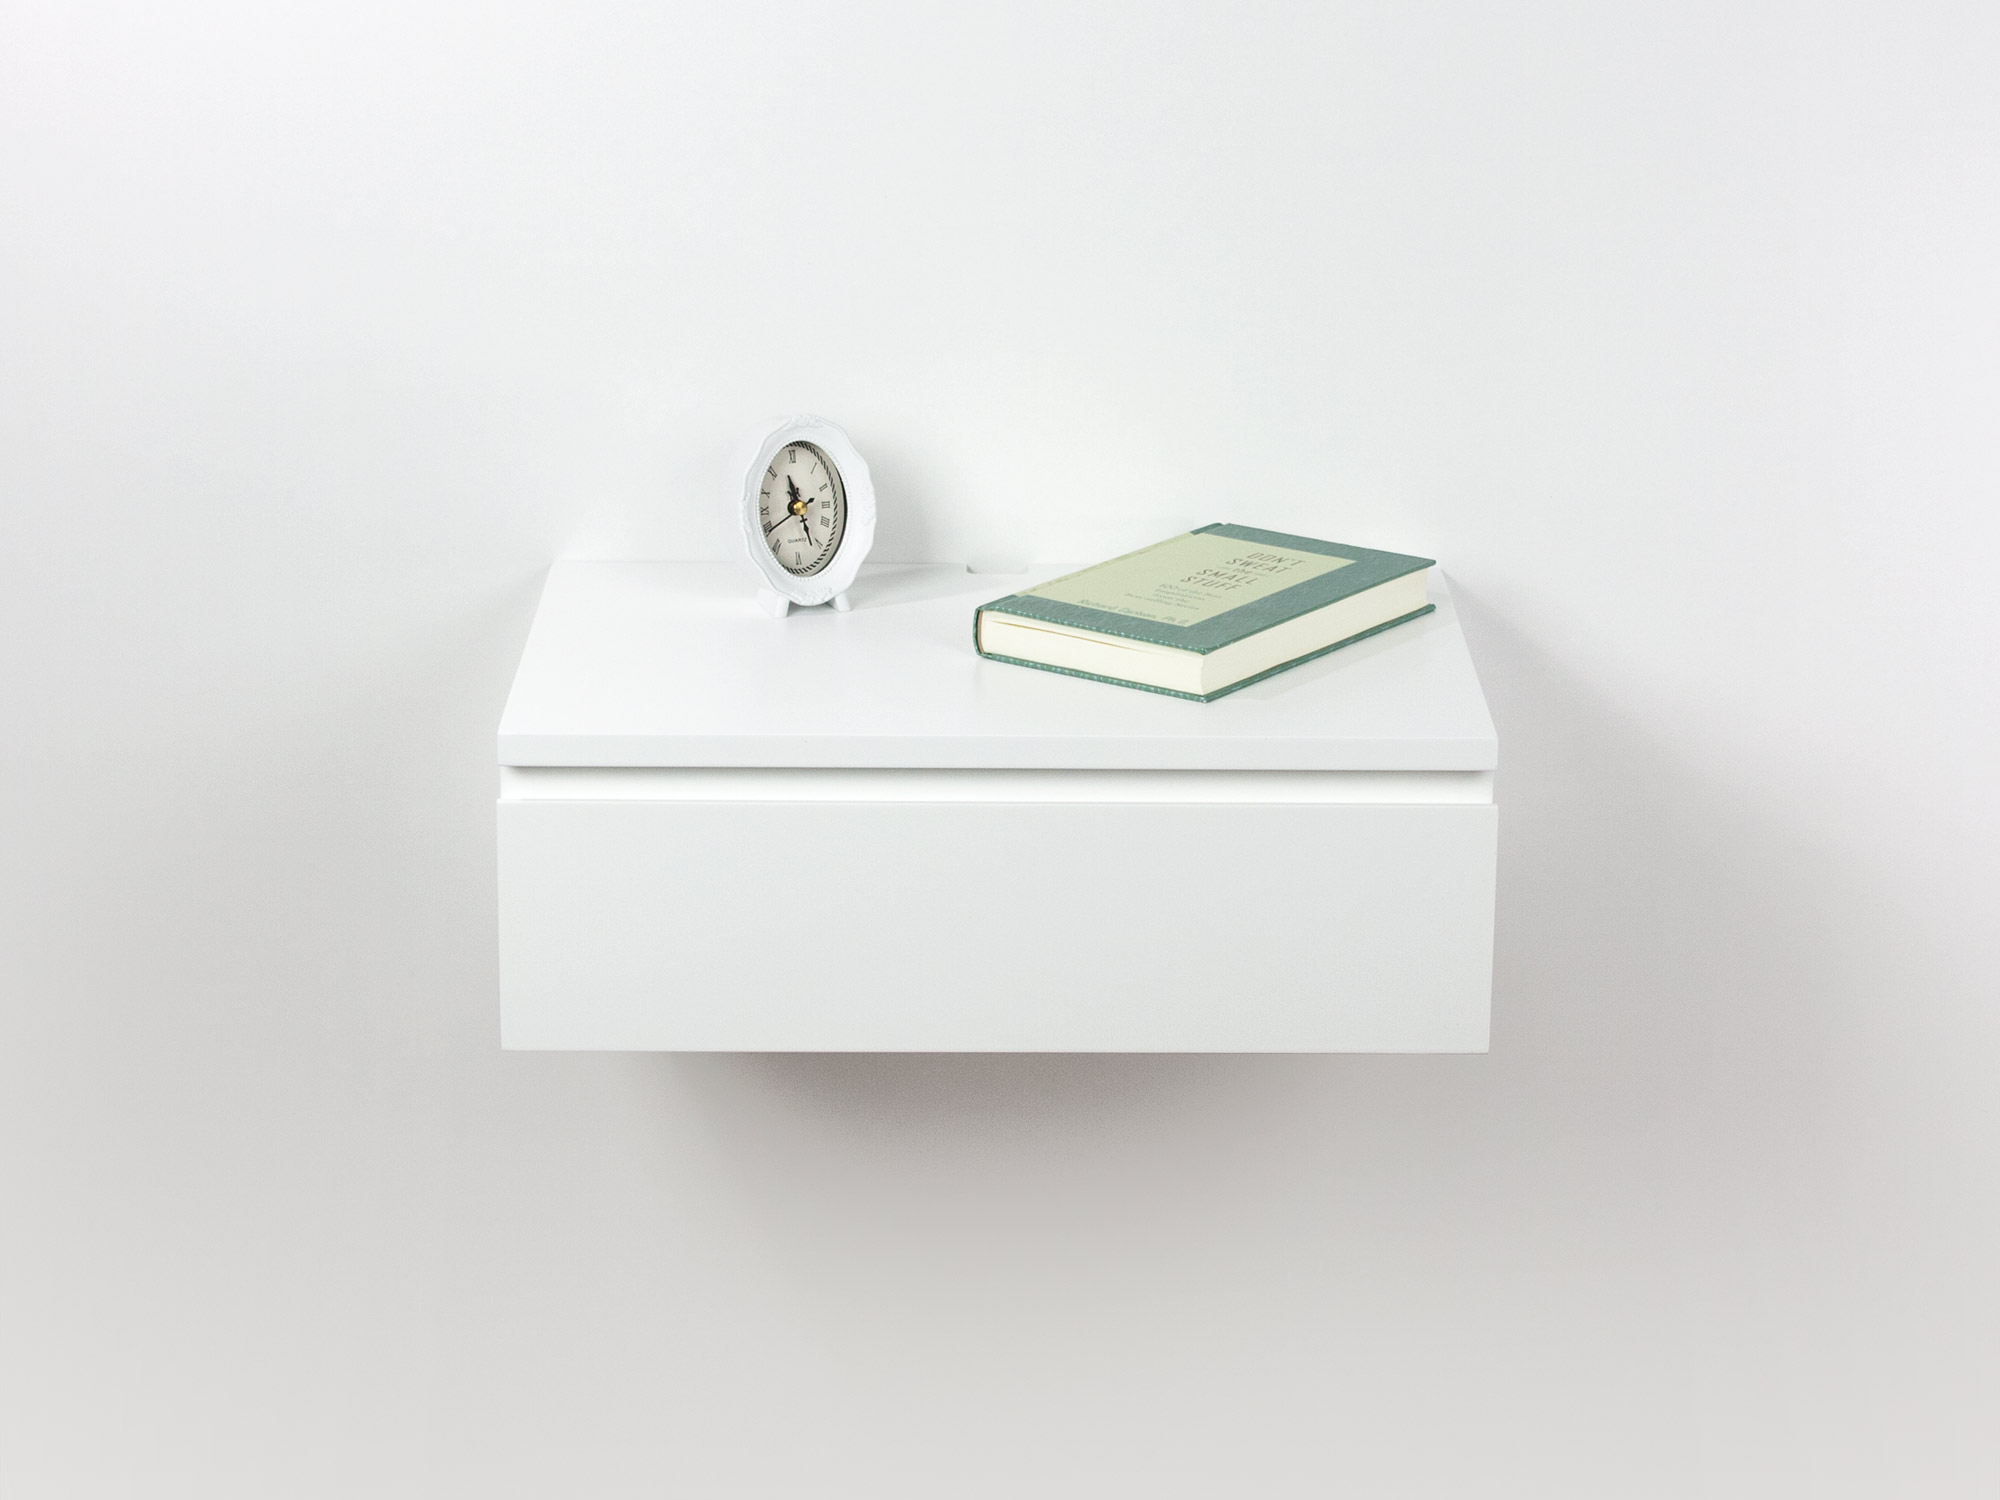 Blanca Sleek White Floating Drawer Nightstand, Modern Bedside Table